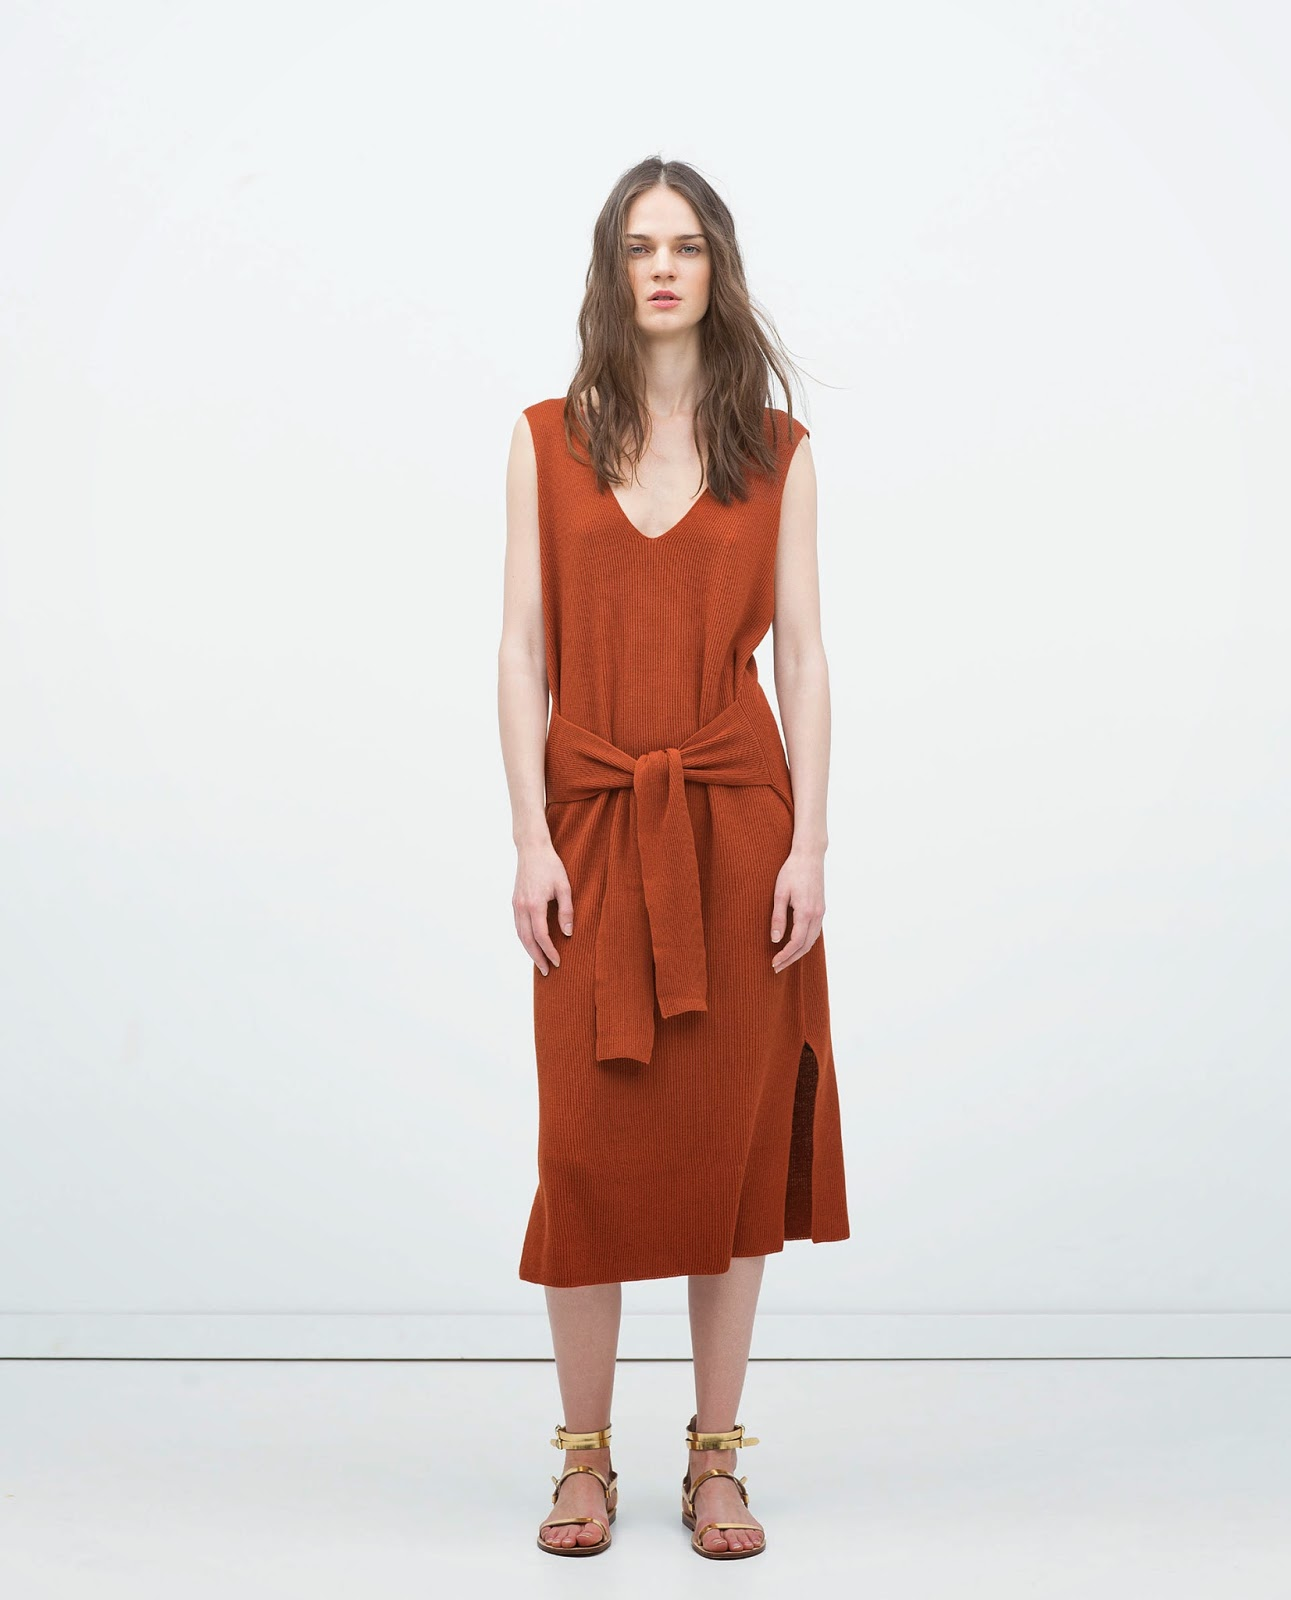 zara knot dress, zara dark orange dress,